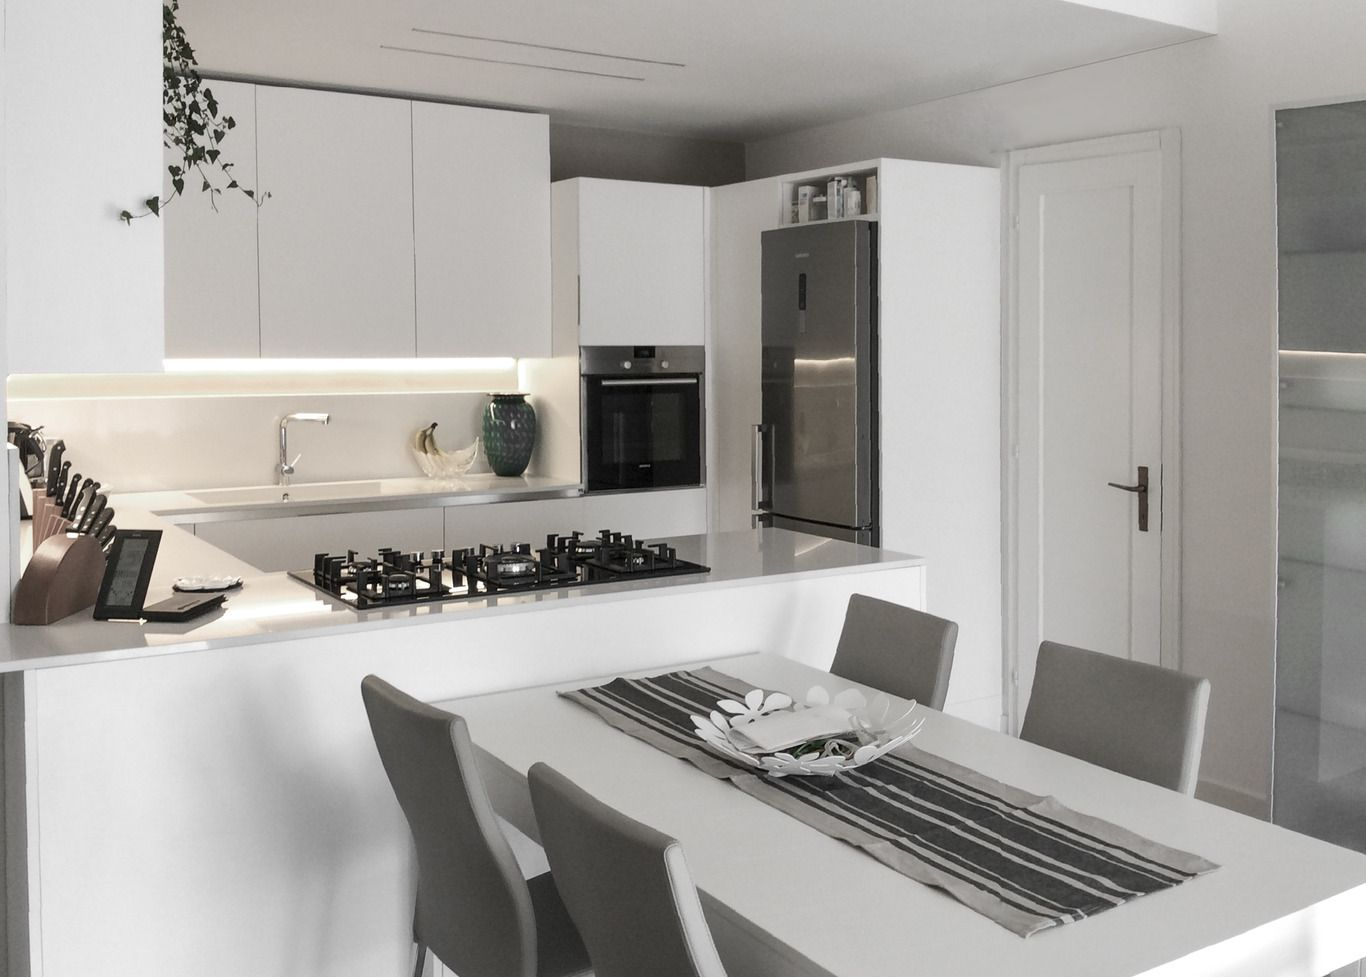 La cucina Start-Time.Go di Lisa | Veneta Cucine | Kitchen design nel ...